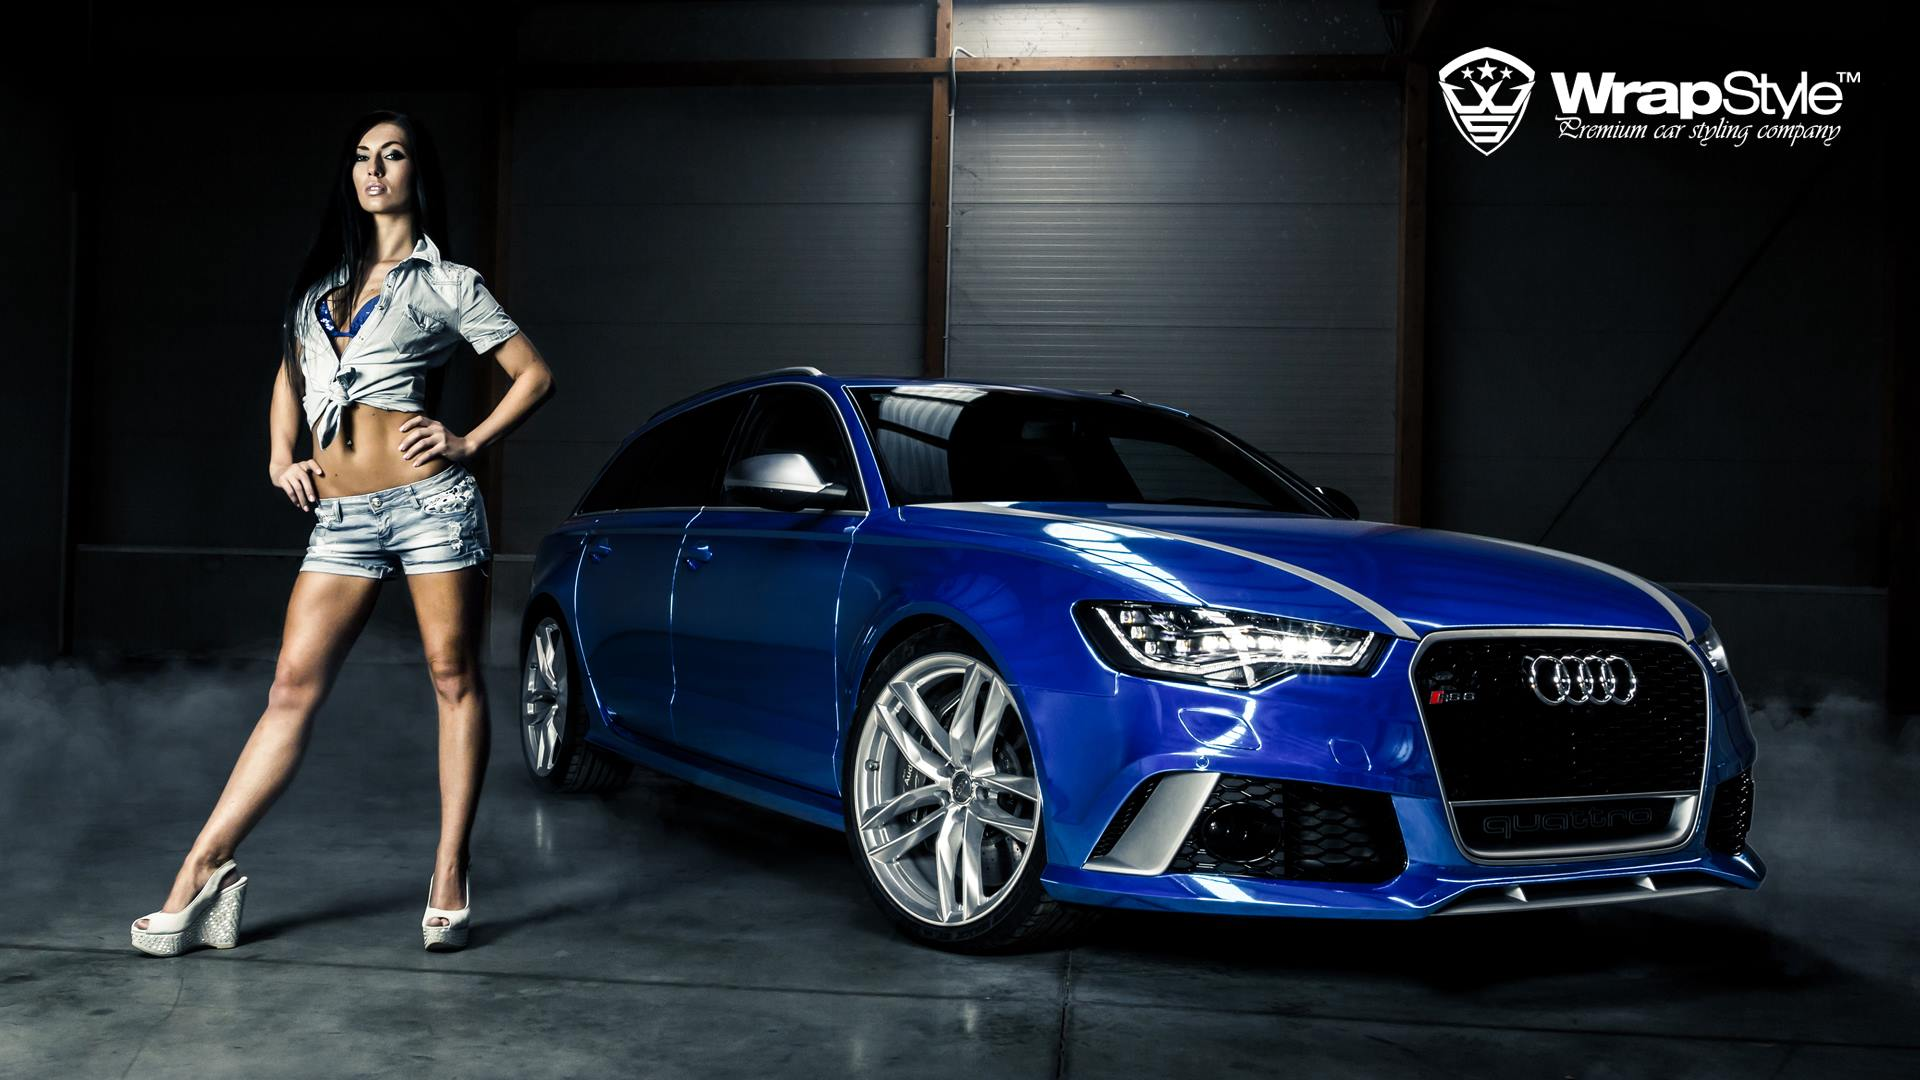 Wallpapers Hd Joker Audi Rs6 Quot Joker Quot Wrapped In Blue Chrome Autoevolution